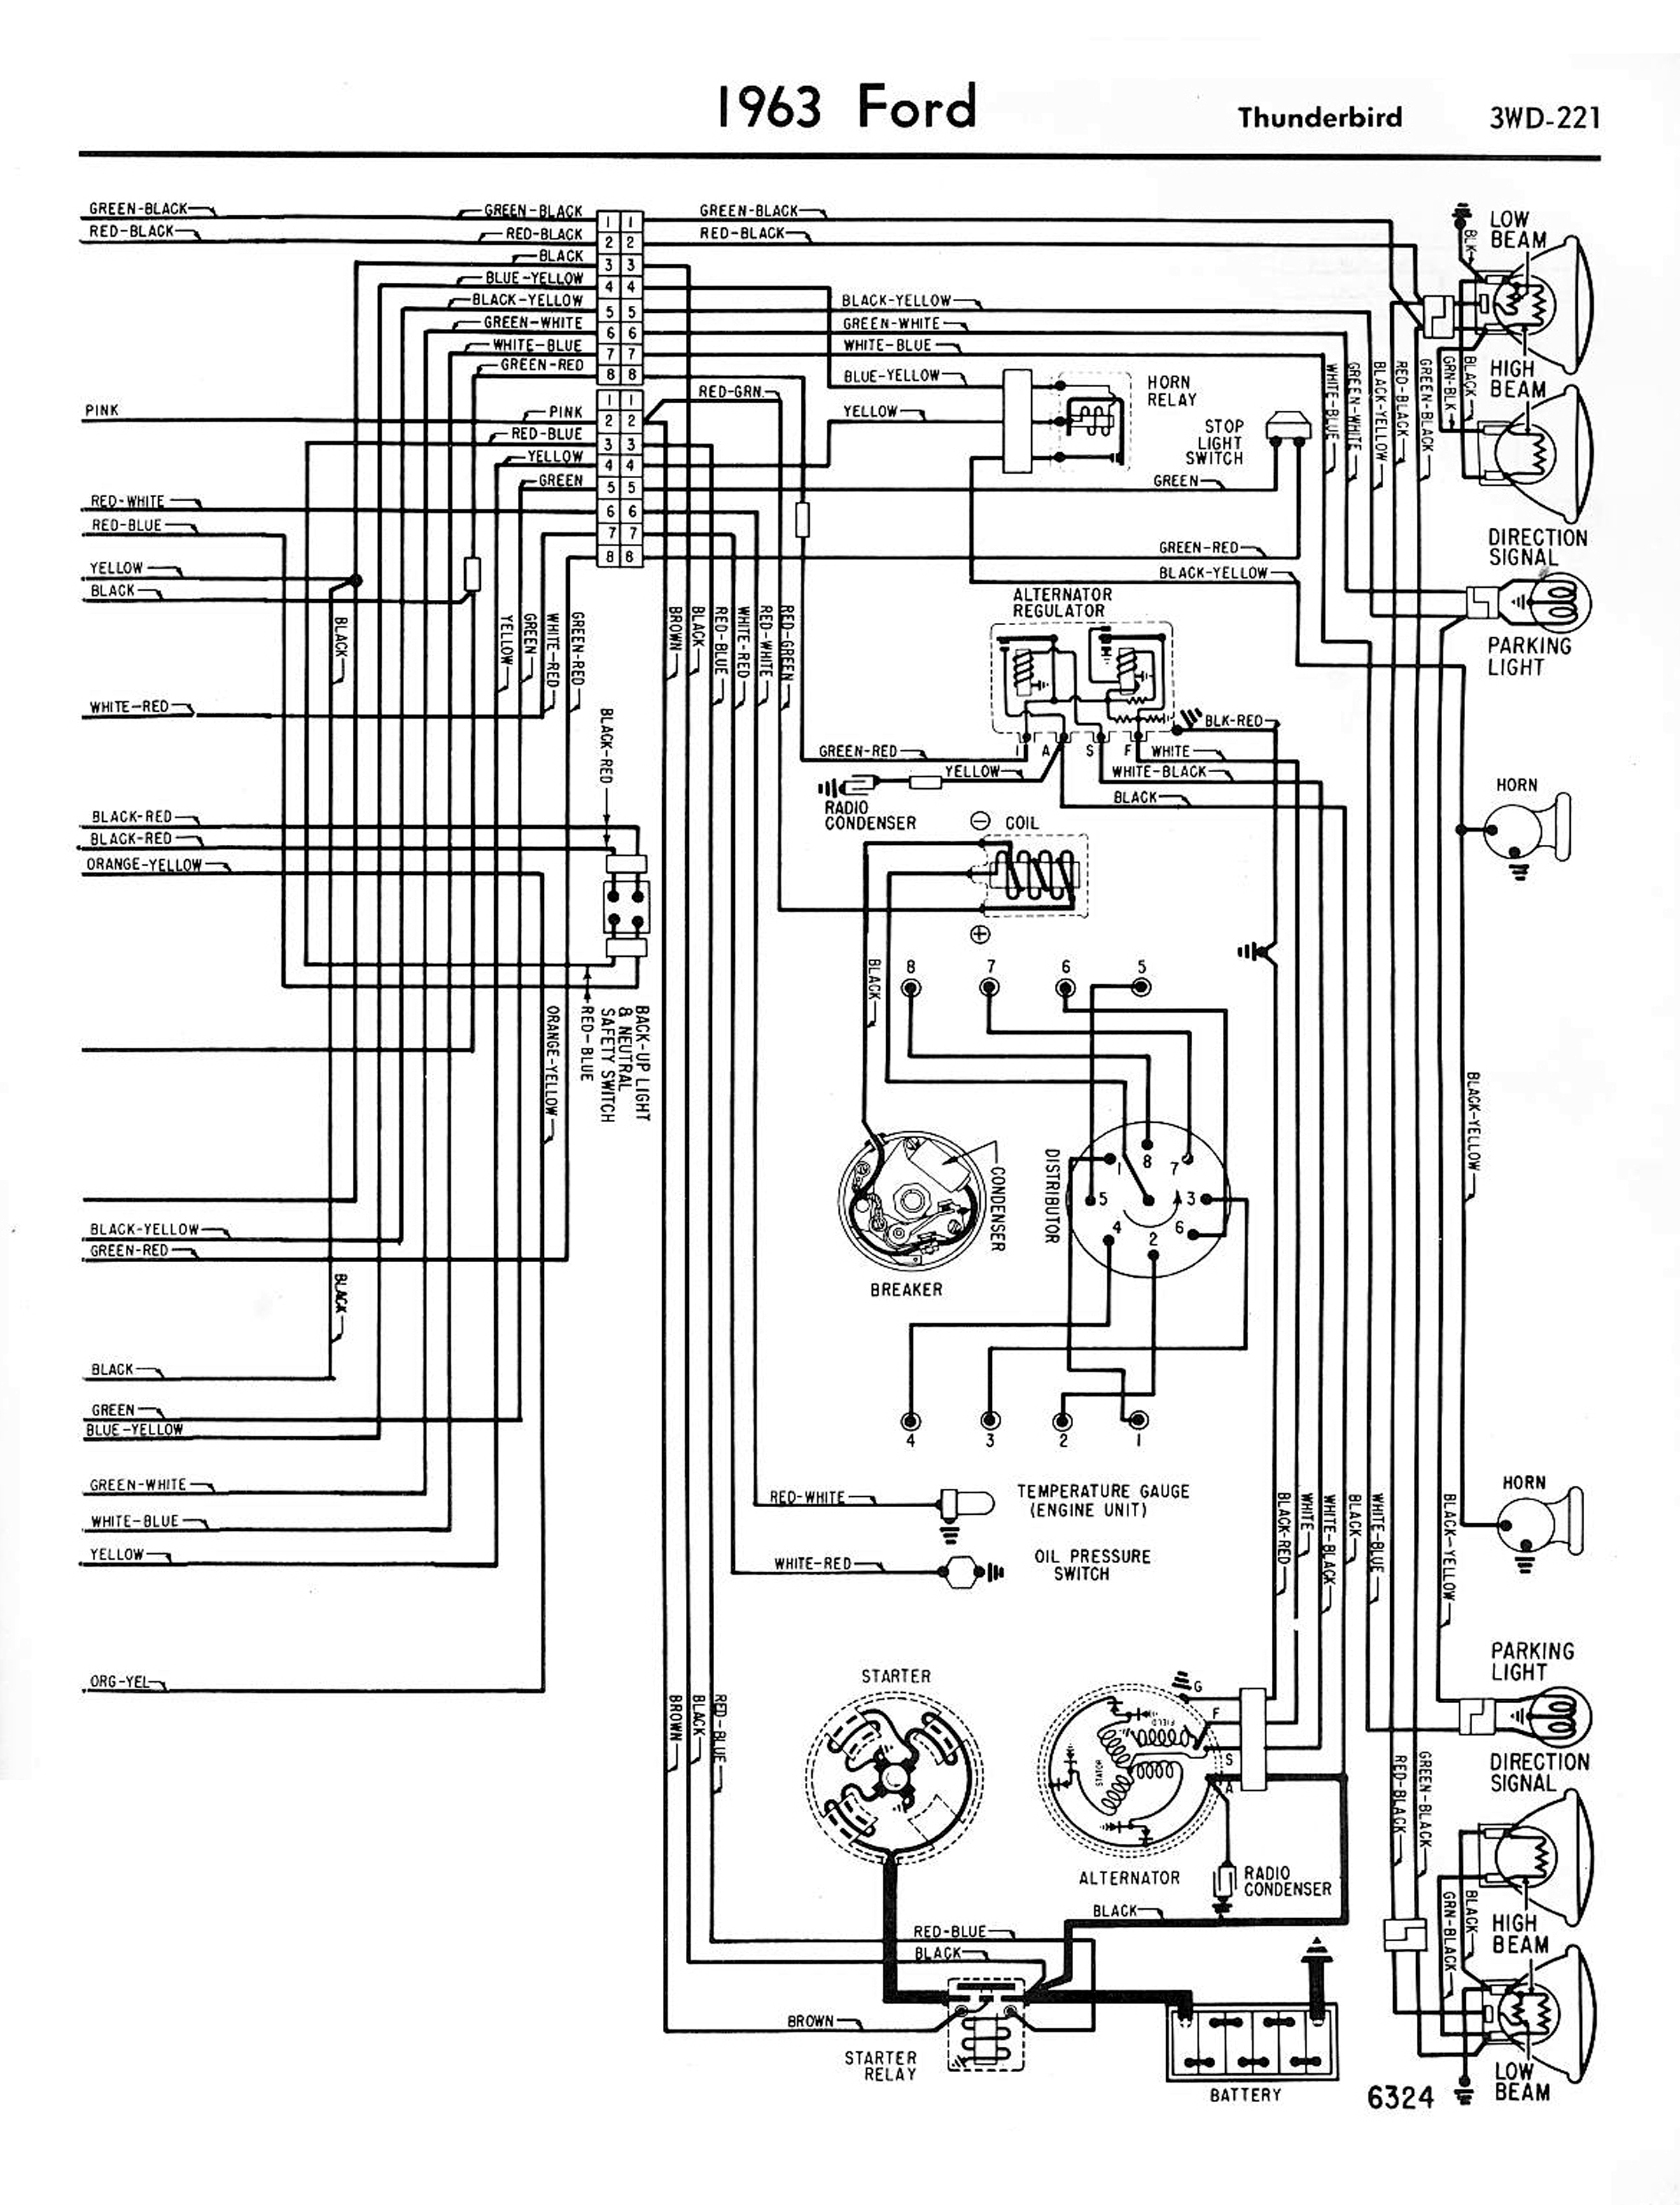 1958 68 Ford Electrical Schematics Turn Signal Wiring Diagram 11 3wd 221 Flarebird Vacuum Diagrams